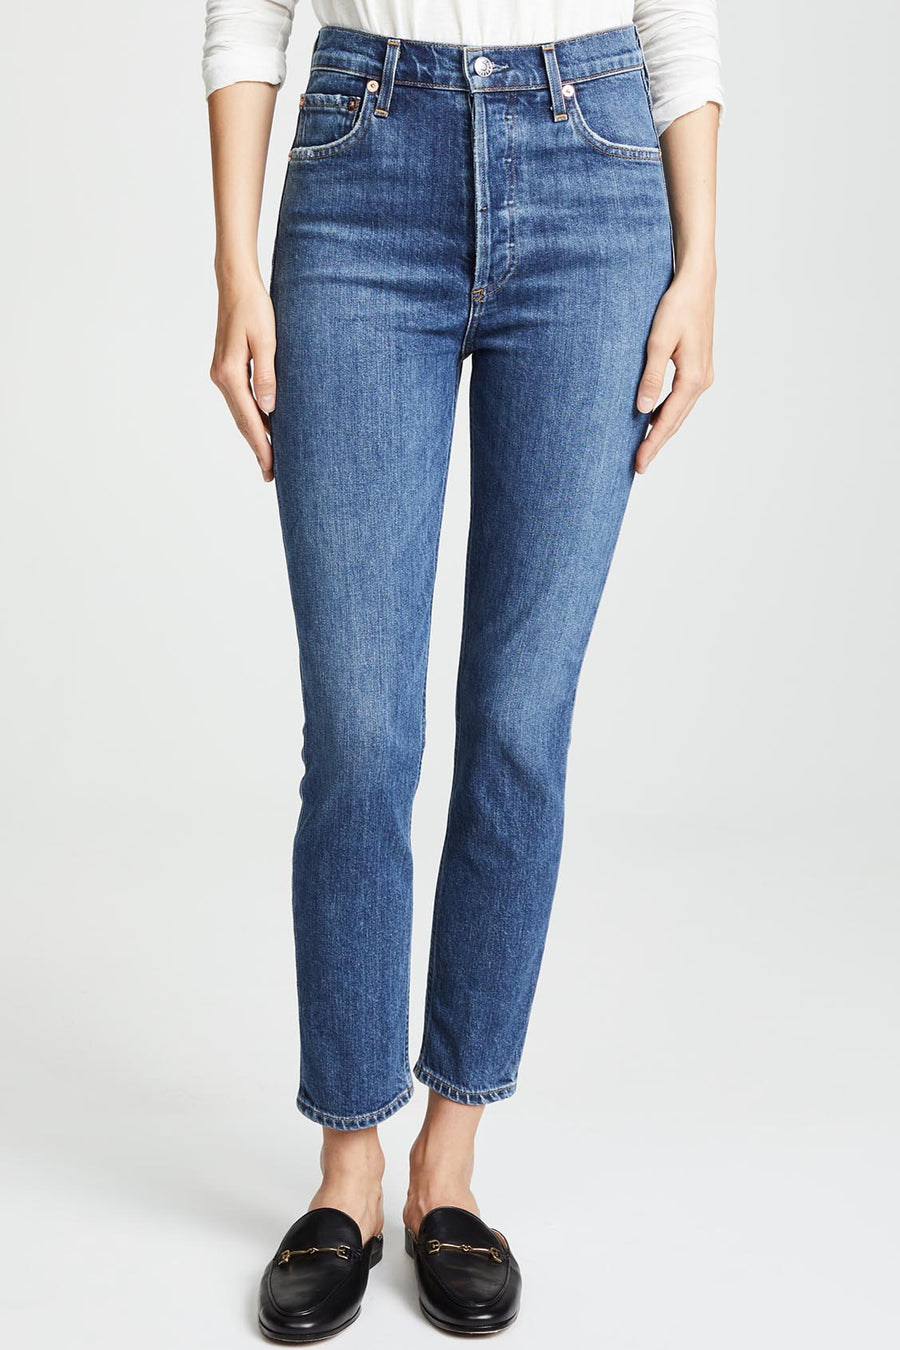 Nico High Rise Slim - Subdued